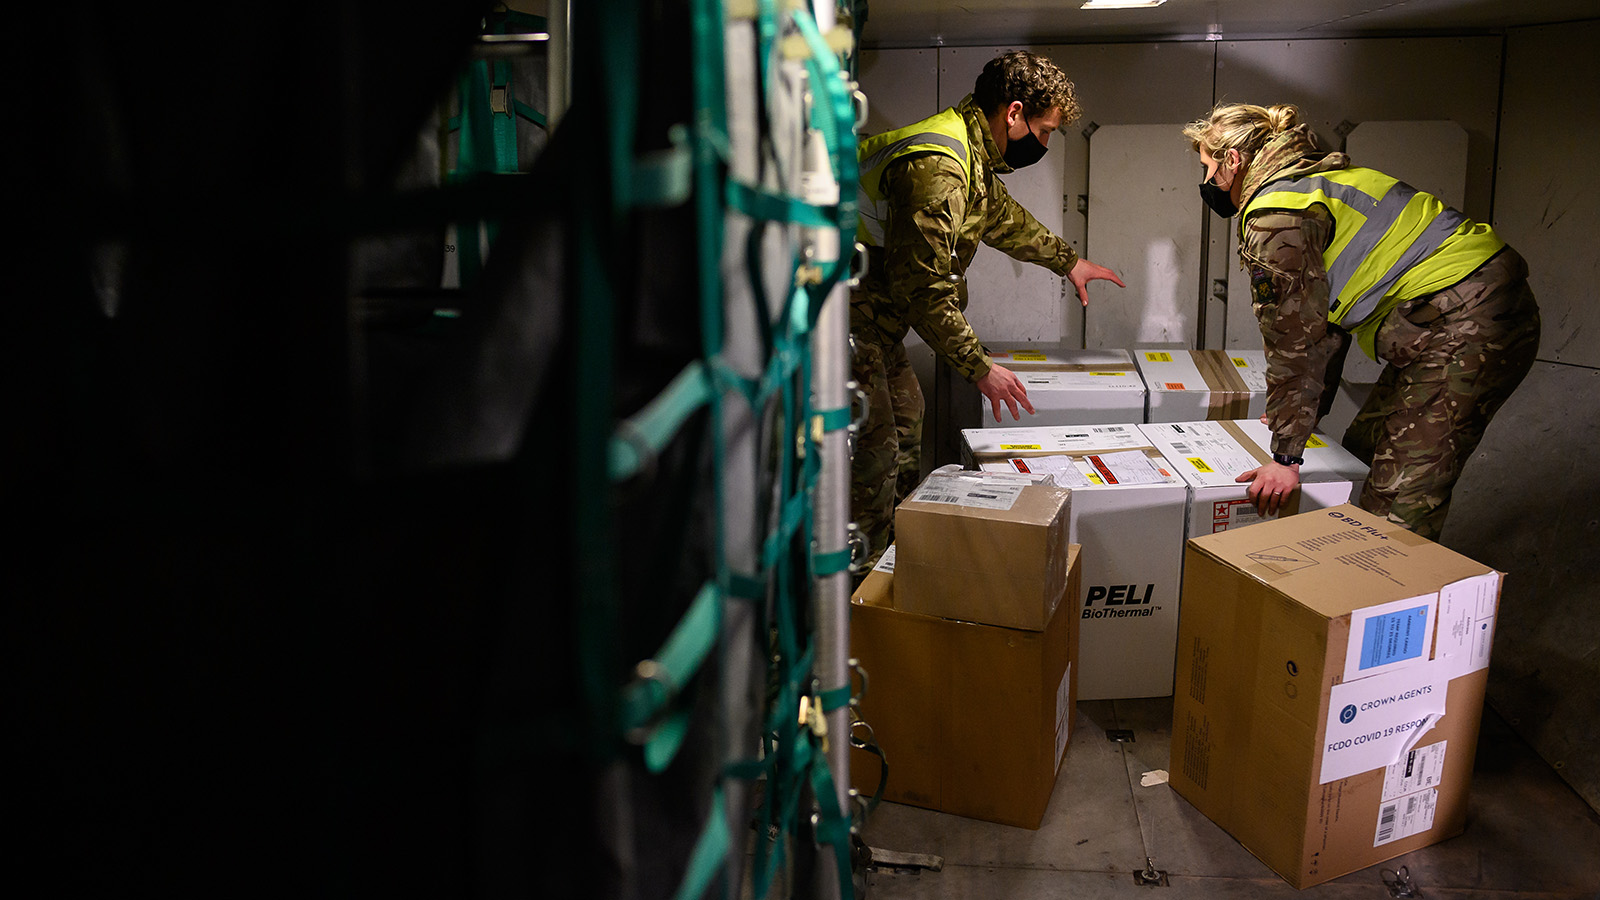 RAF personnel load a batch of the Covid-19 vaccine onto a Voyager aircraft bound for the Falkland Islands at RAF Brize Norton on February 01, 2021 in Brize Norton, England.